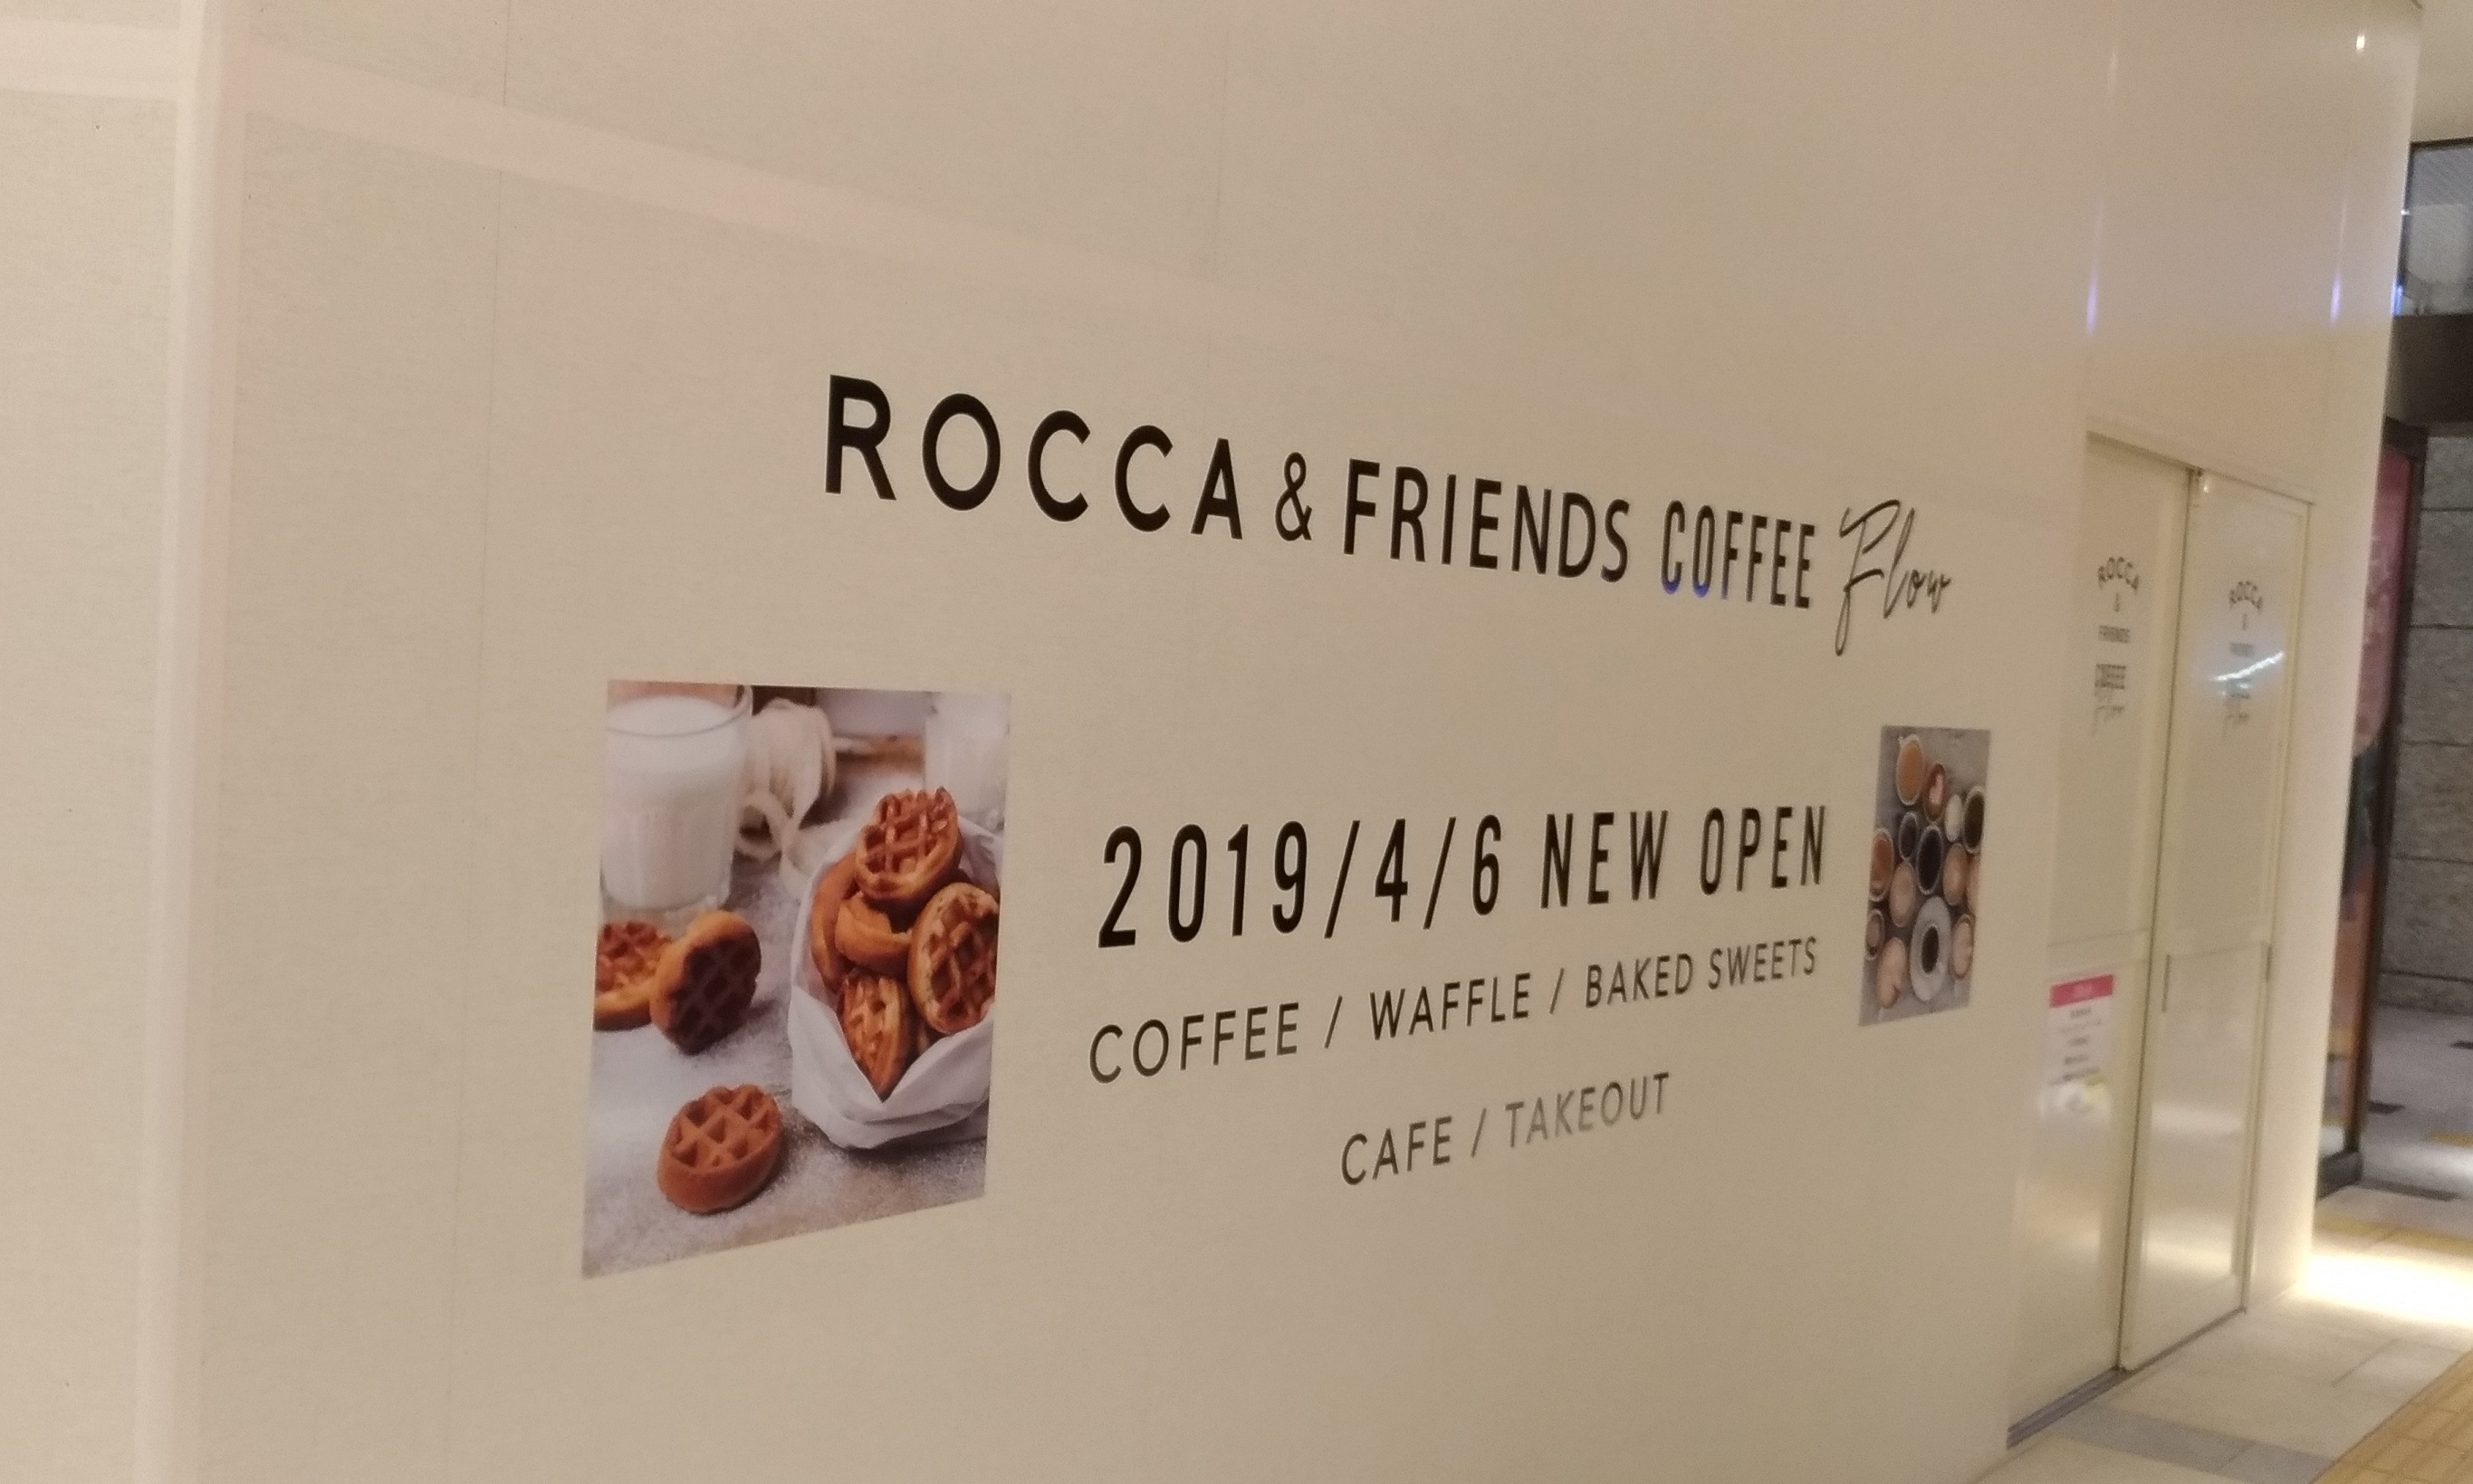 osaka_lucua_cafe_rocca_friends_open.jpg